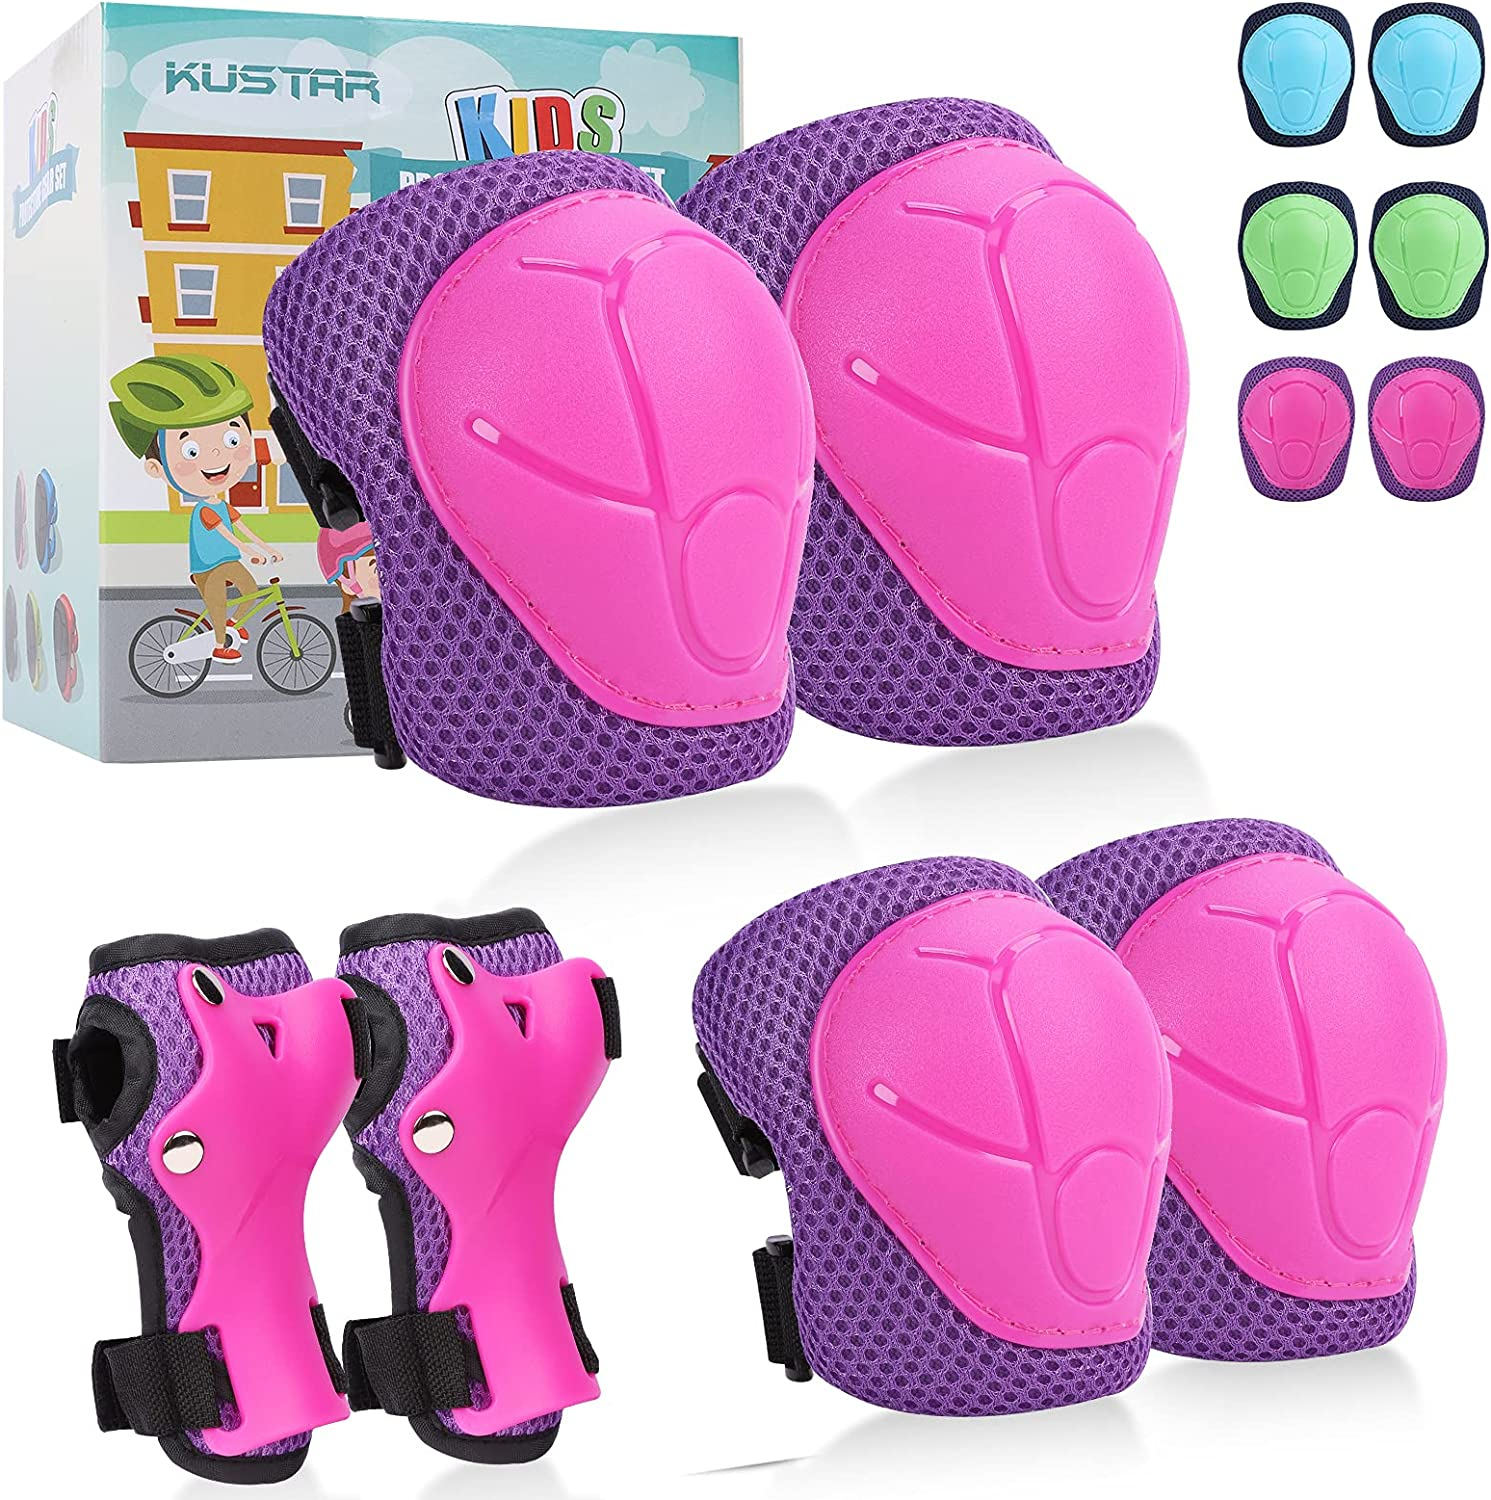 Knee Pads Elbow Kids Recommendation Ages 3-7 6 in w Phoenix Mall Set Gear 1 Protective